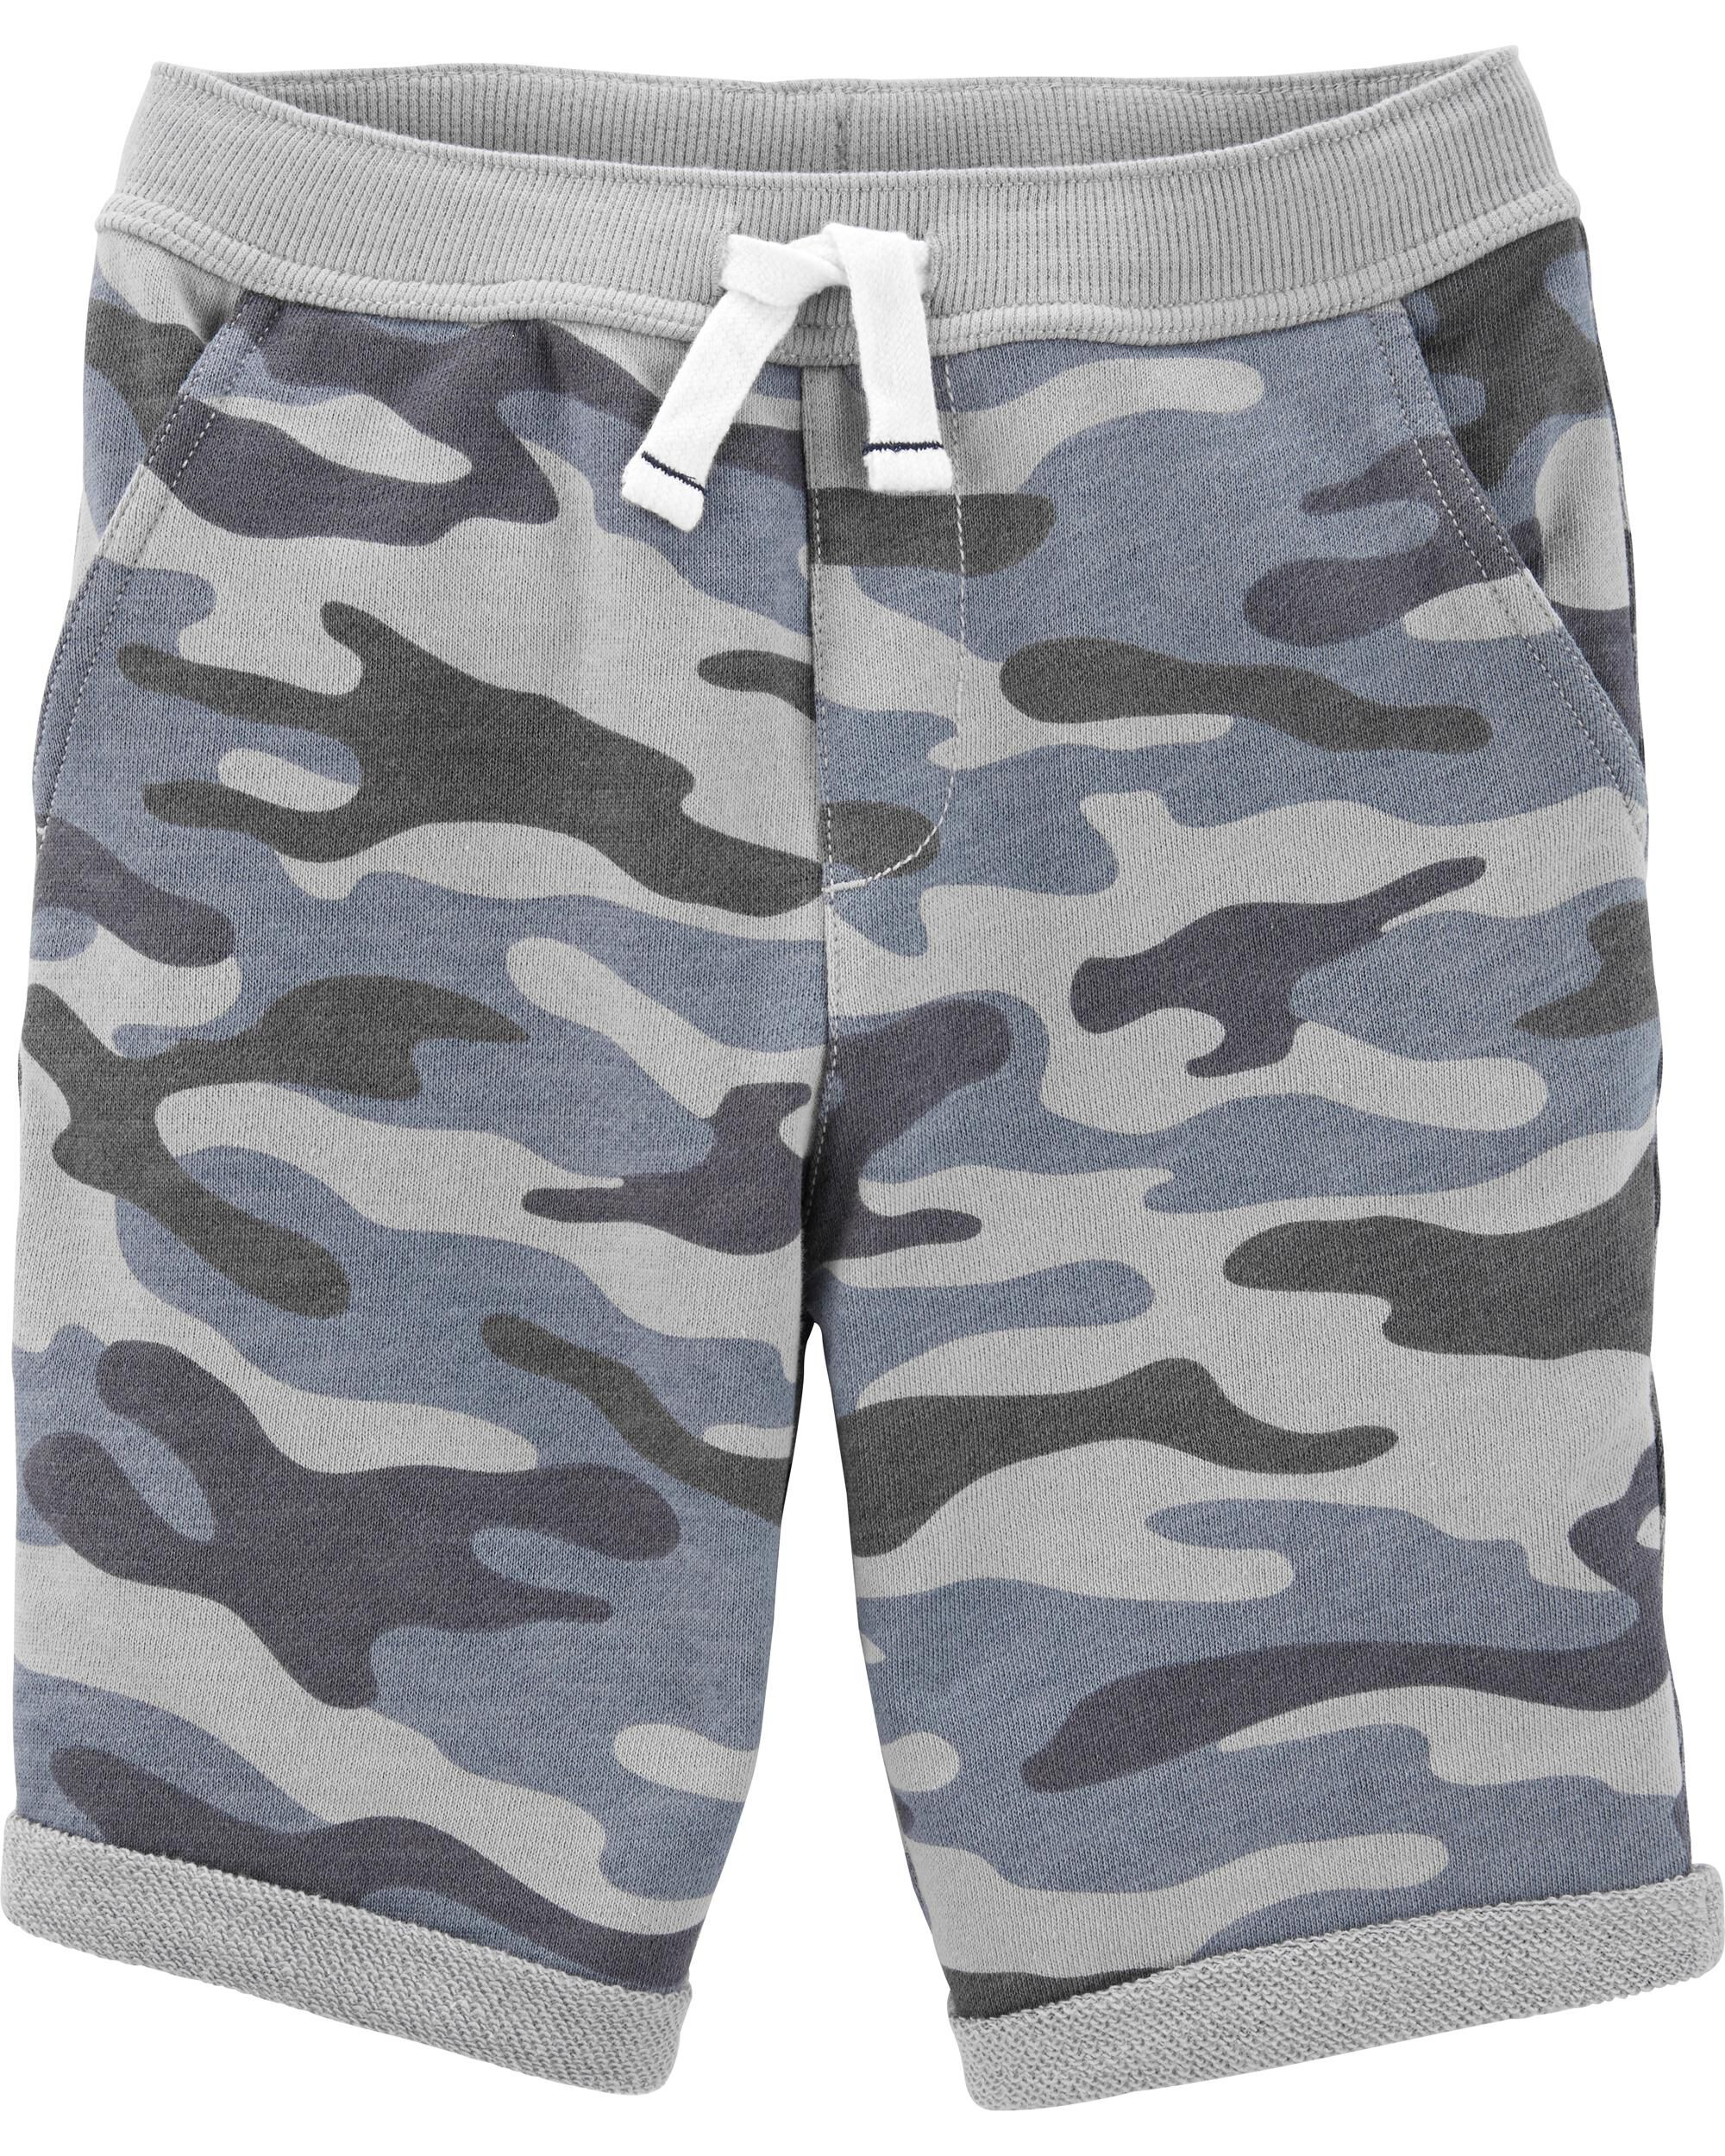 *Clearance*  Camo Pull-On French Terry Shorts